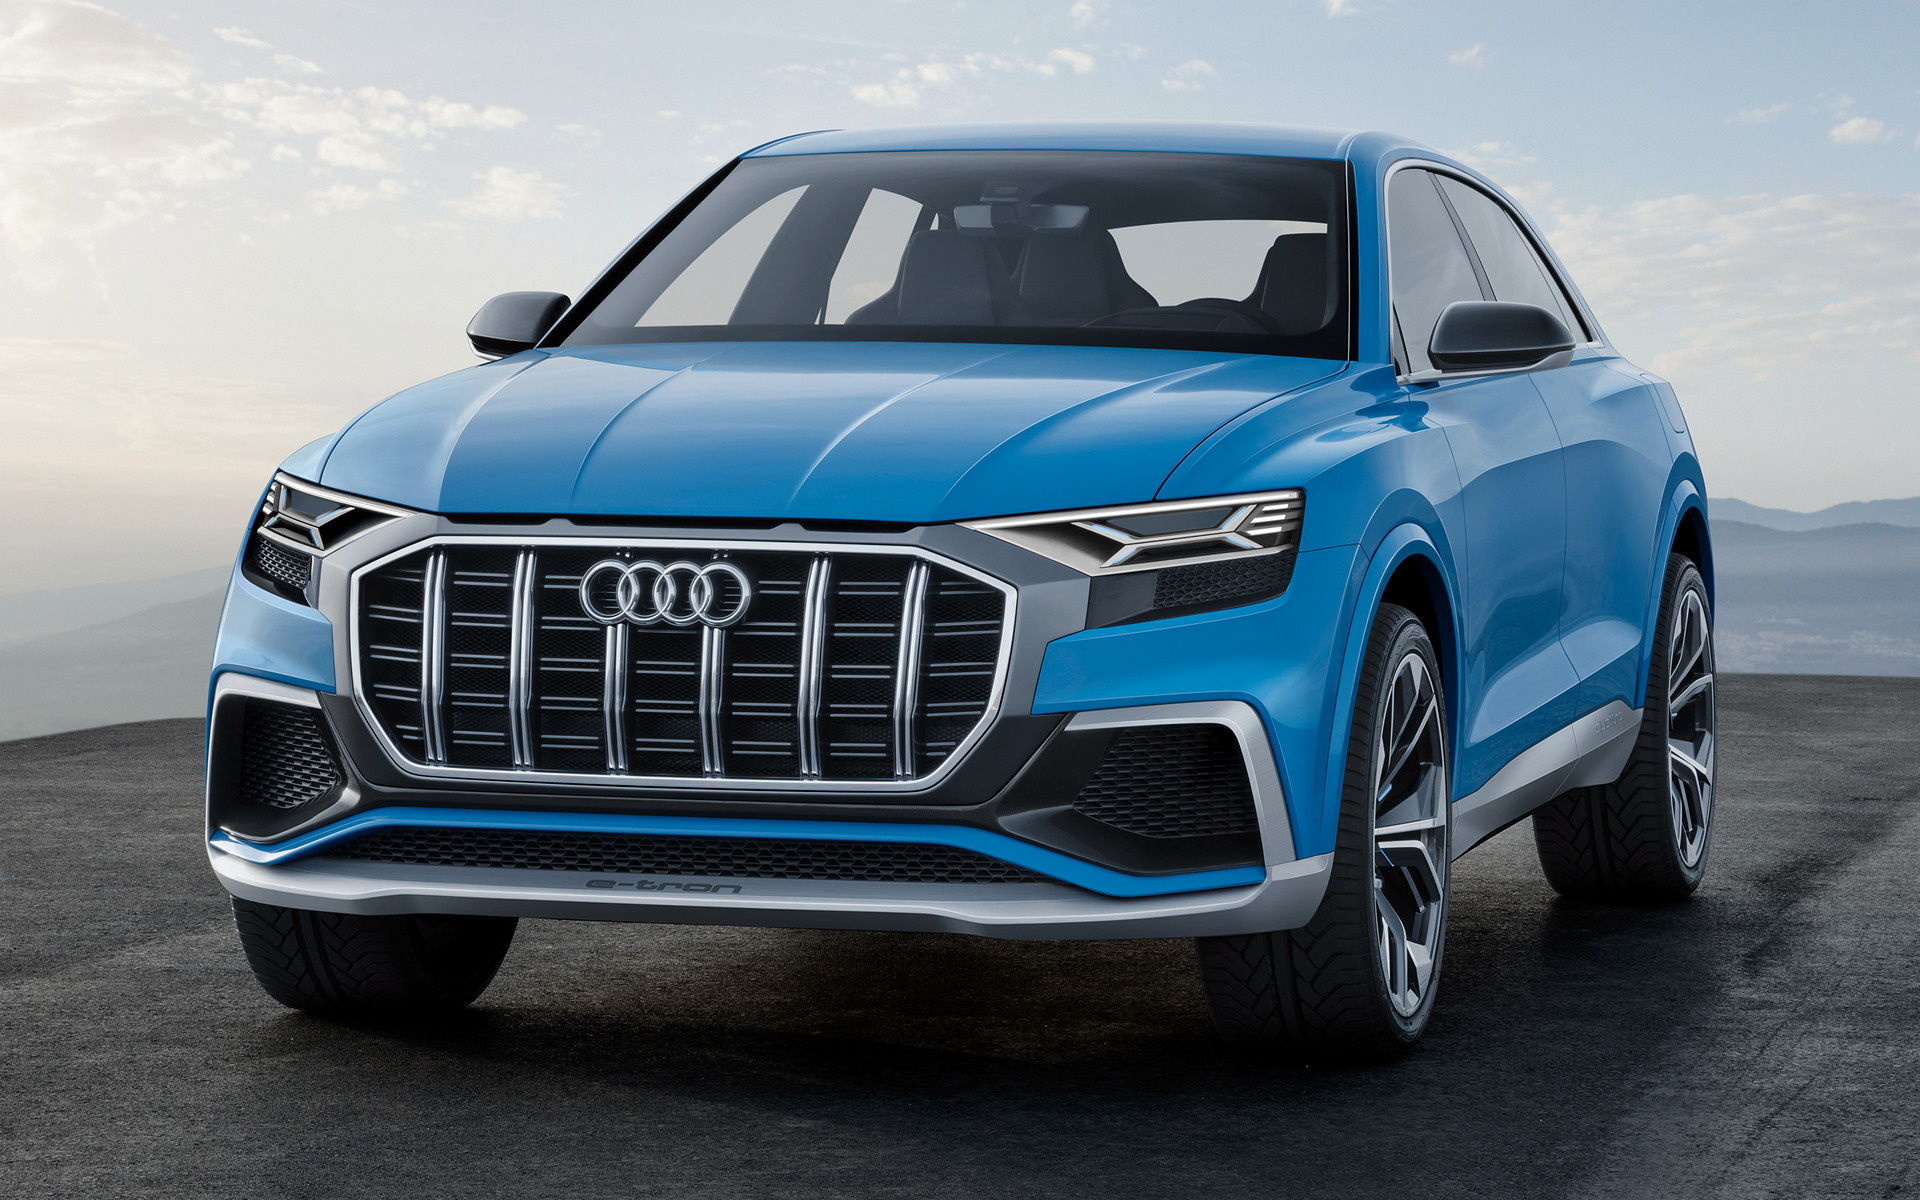 2017 Audi Q8 concept - Wallpapers and HD Images | Car Pixel